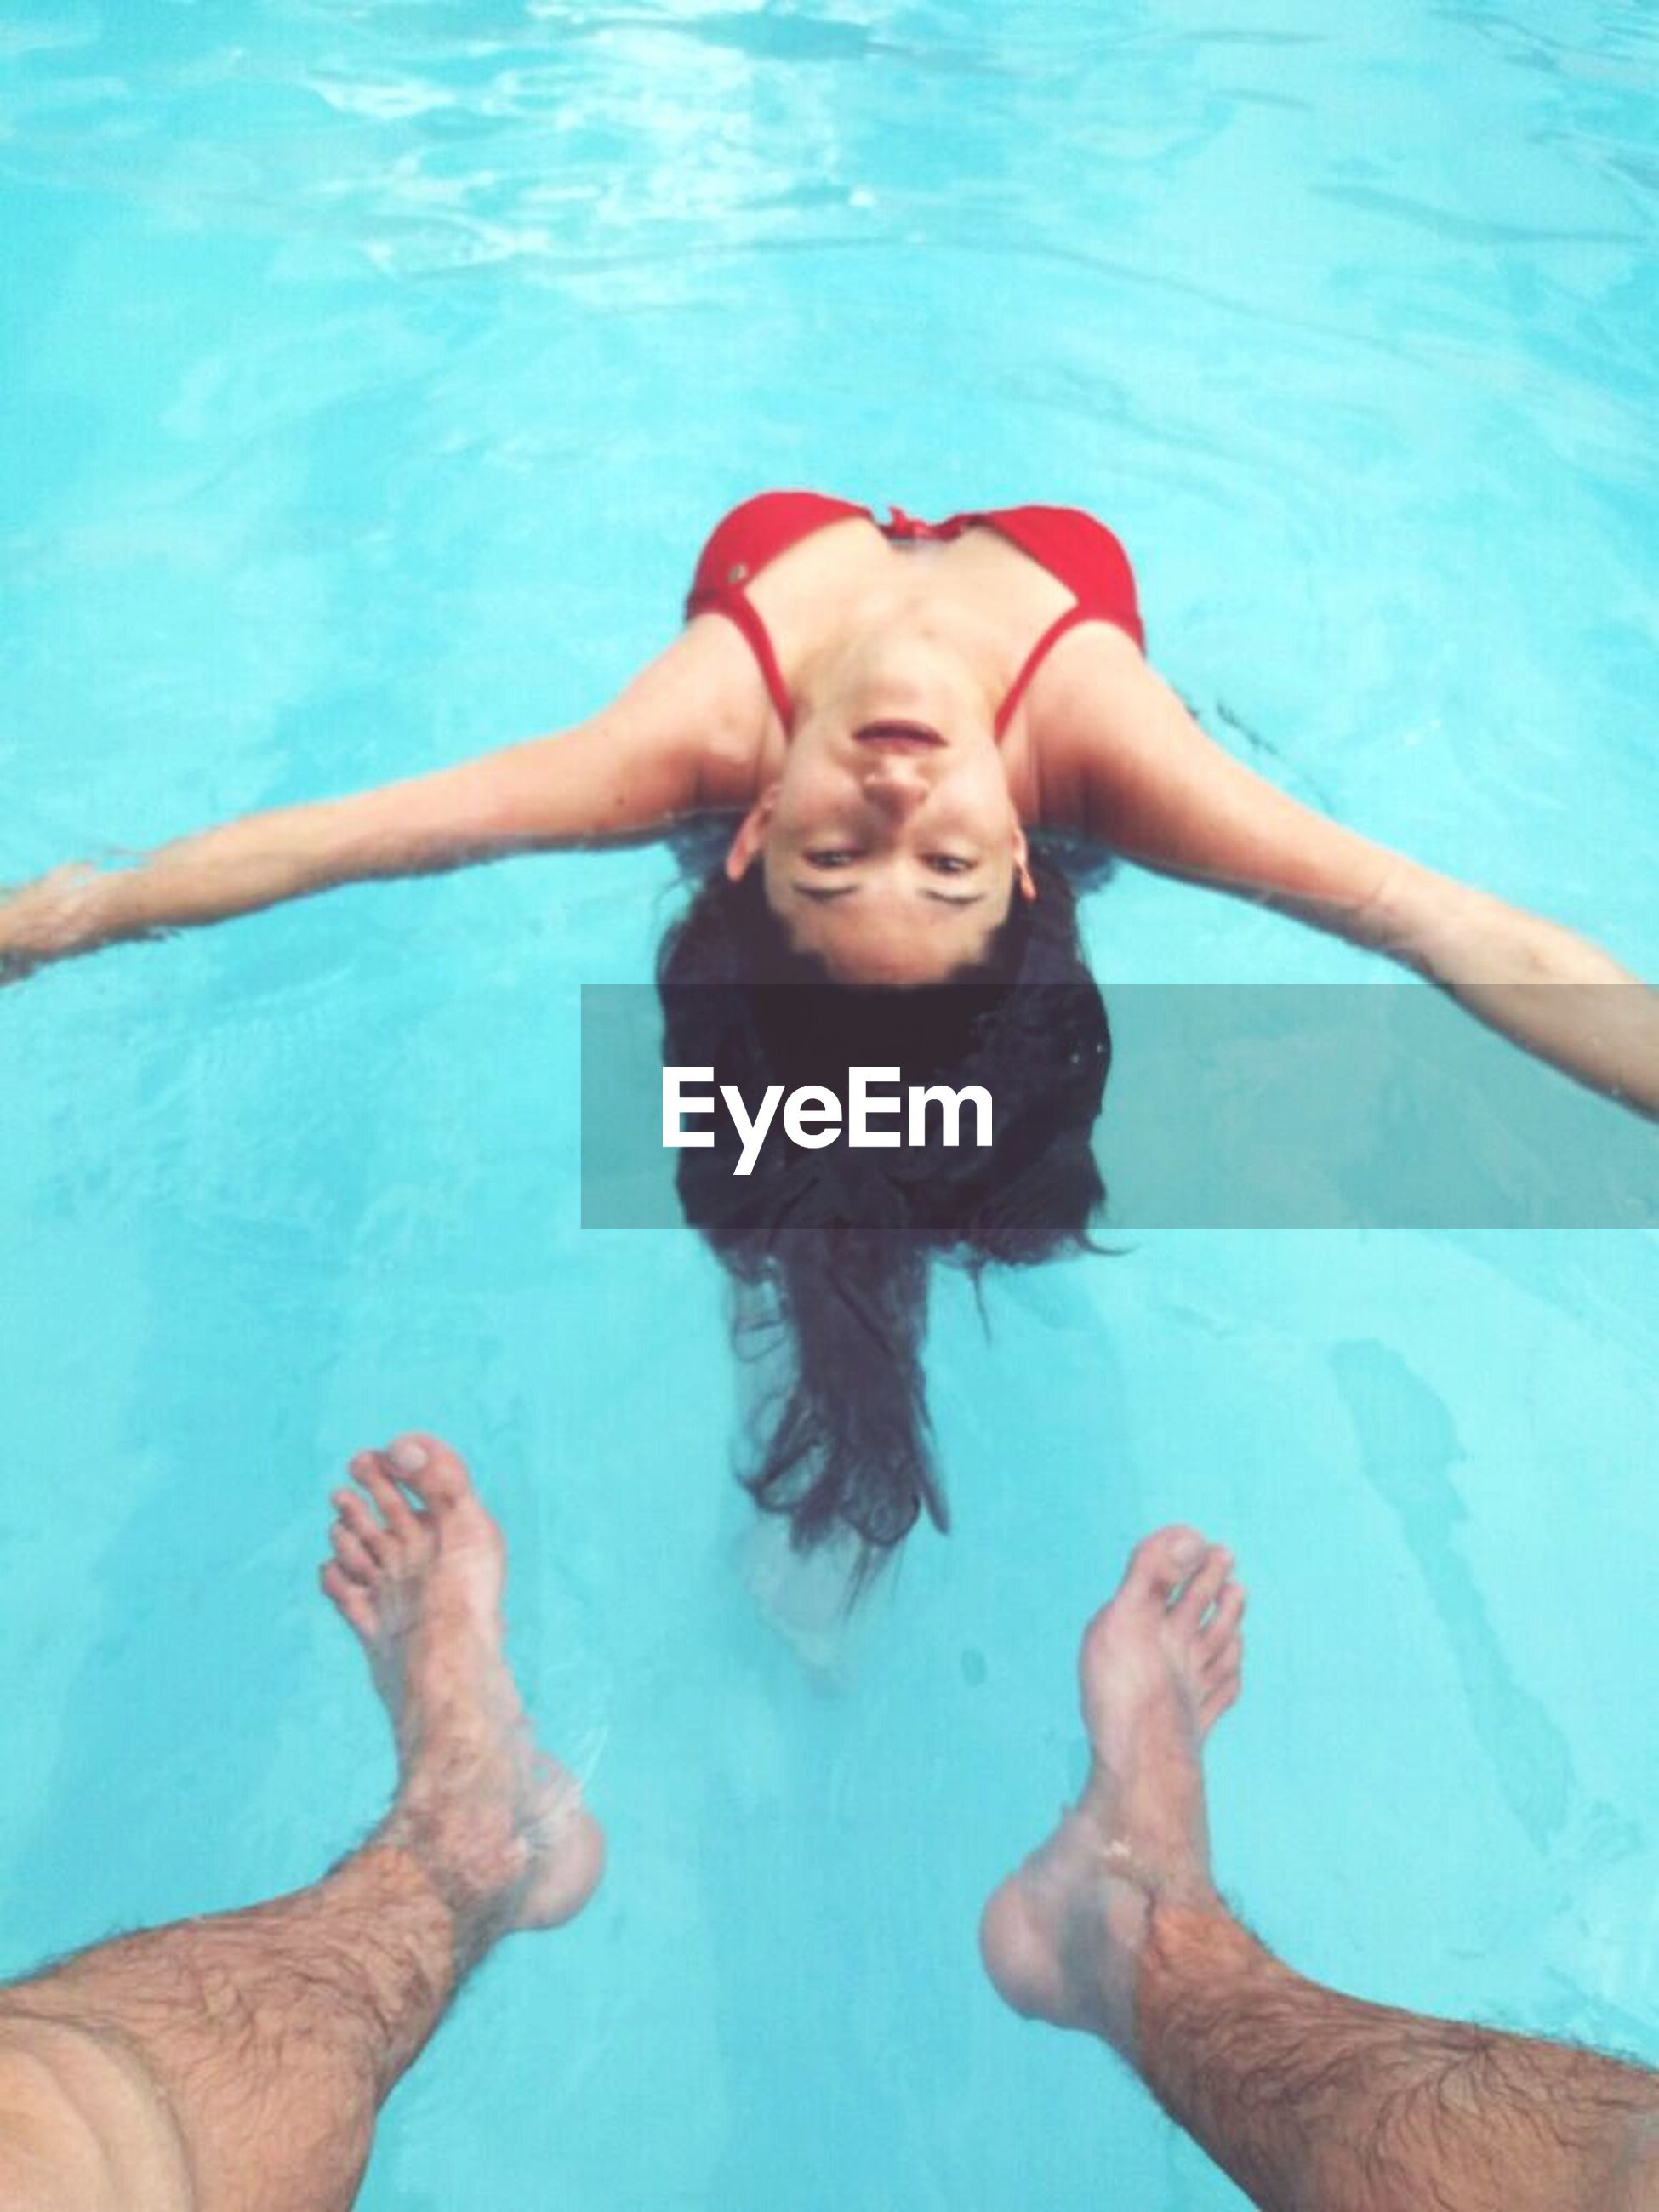 swimming pool, water, leisure activity, swimming, real people, fun, happiness, summer, enjoyment, high angle view, day, smiling, two people, outdoors, wet, vacations, shirtless, portrait, lifestyles, togetherness, young adult, young women, people